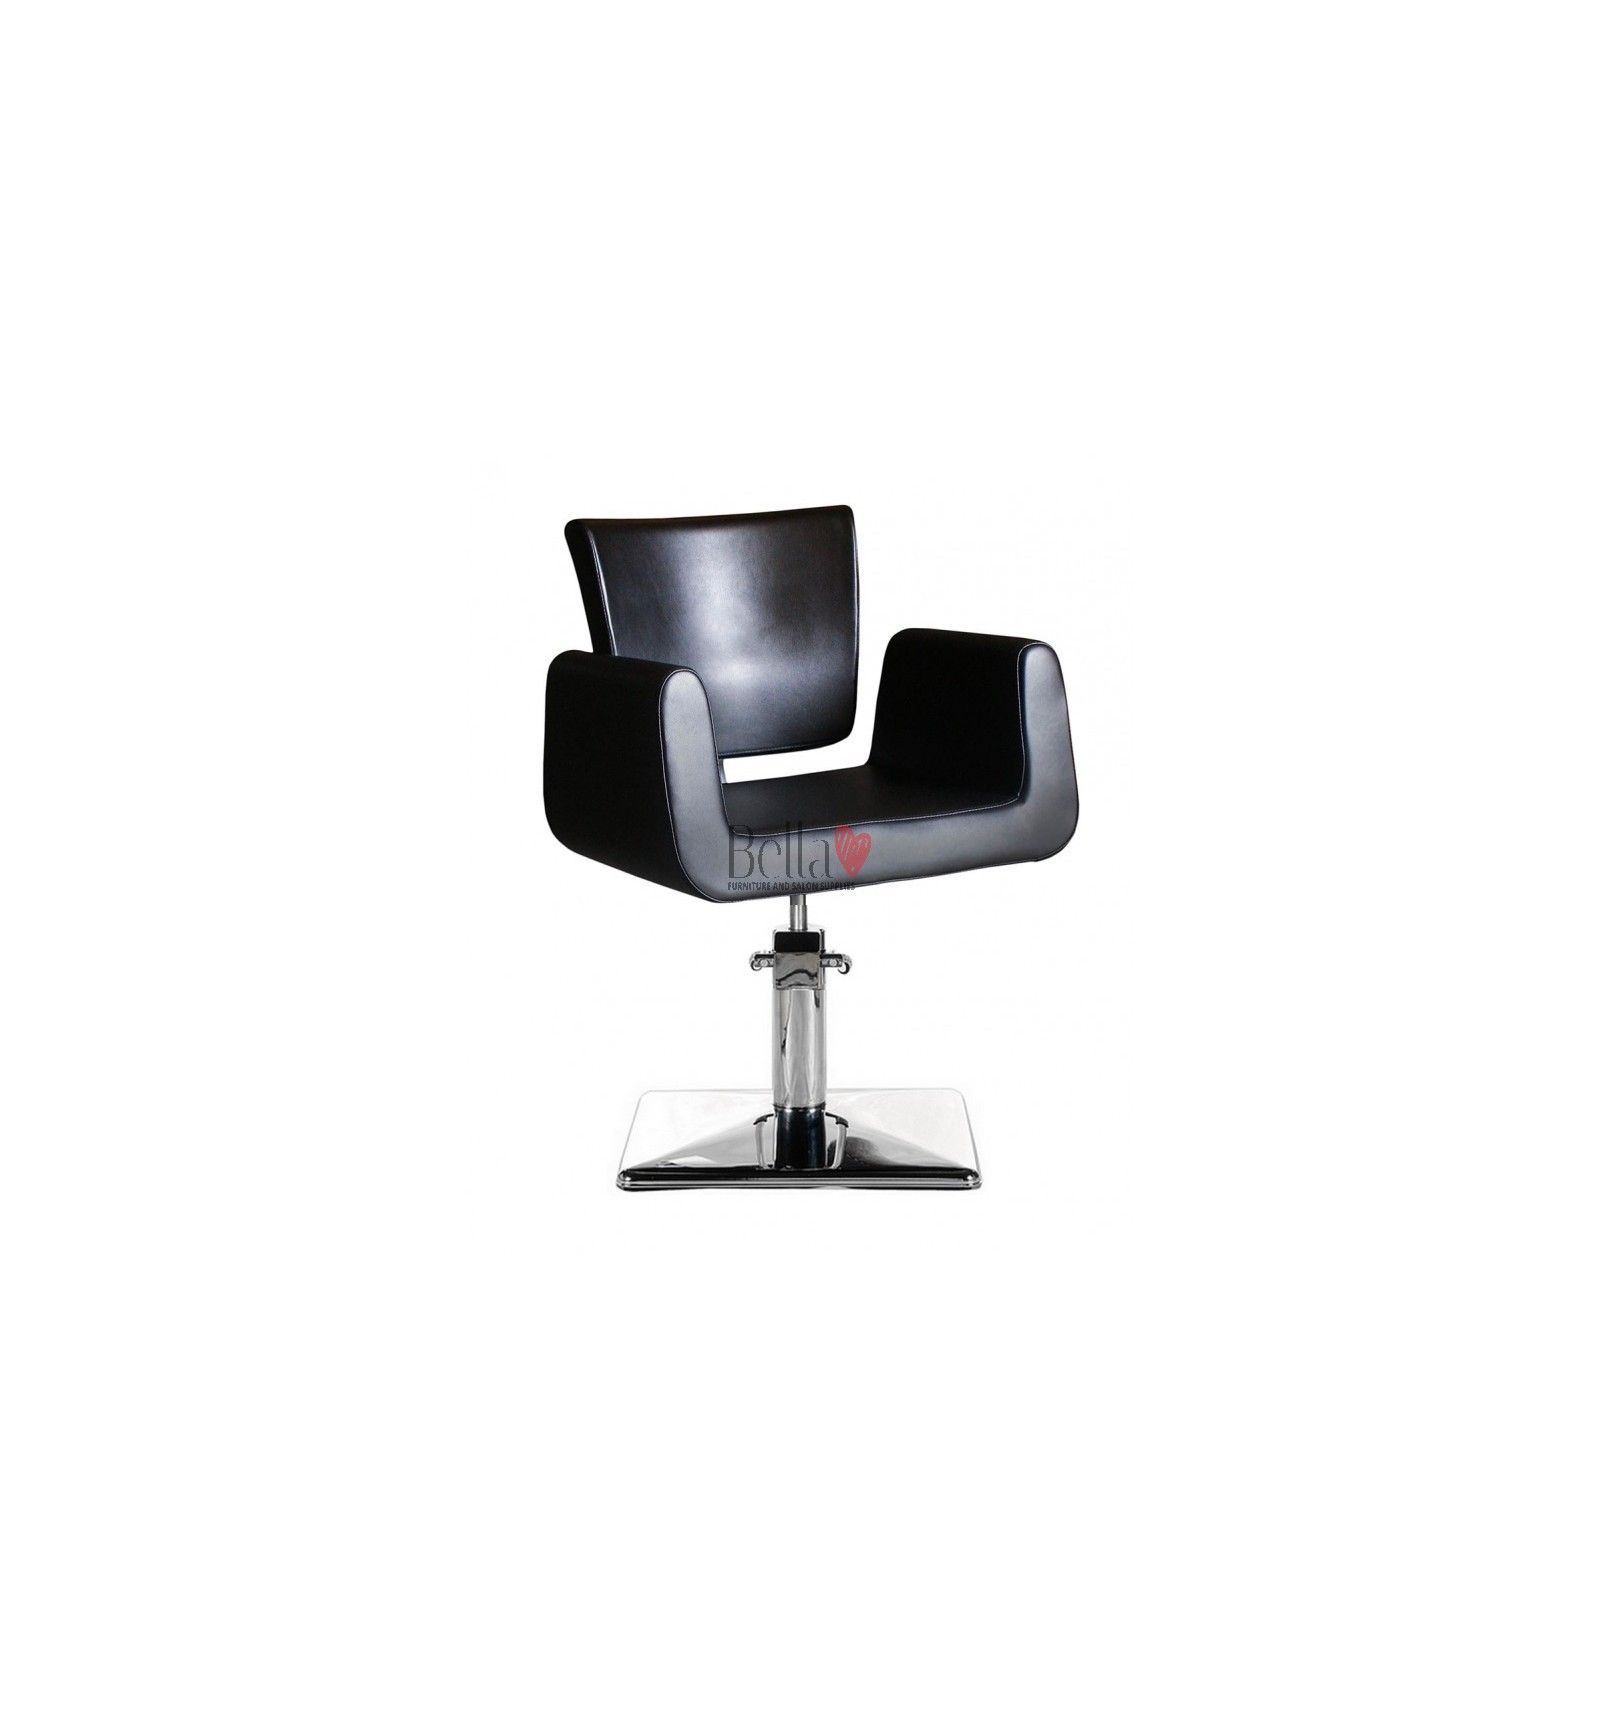 Cube Chairs Professional Styling Chair Ireland Styling Chairs For Sale Ireland